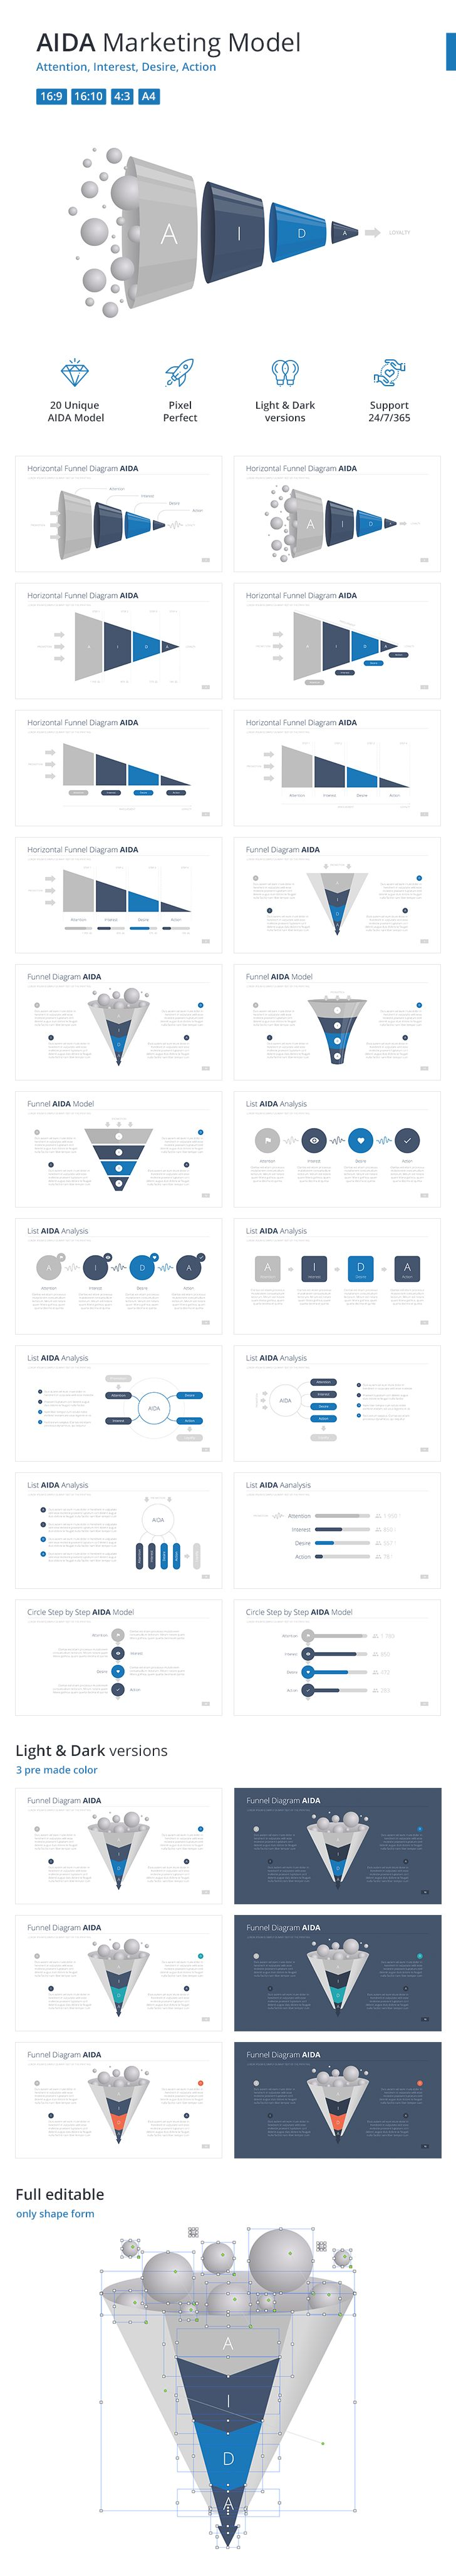 AIDA Marketing Model for Keynote: 20 Unique slide, pixel perfect, all format 16:9,16:10, 4:3, A4, easy editable, ready to print, light and dark versions, support 24/7. Ideal for Marketing or Company Report. Download Now! #keynote #analysis #marketing #funnel #aida